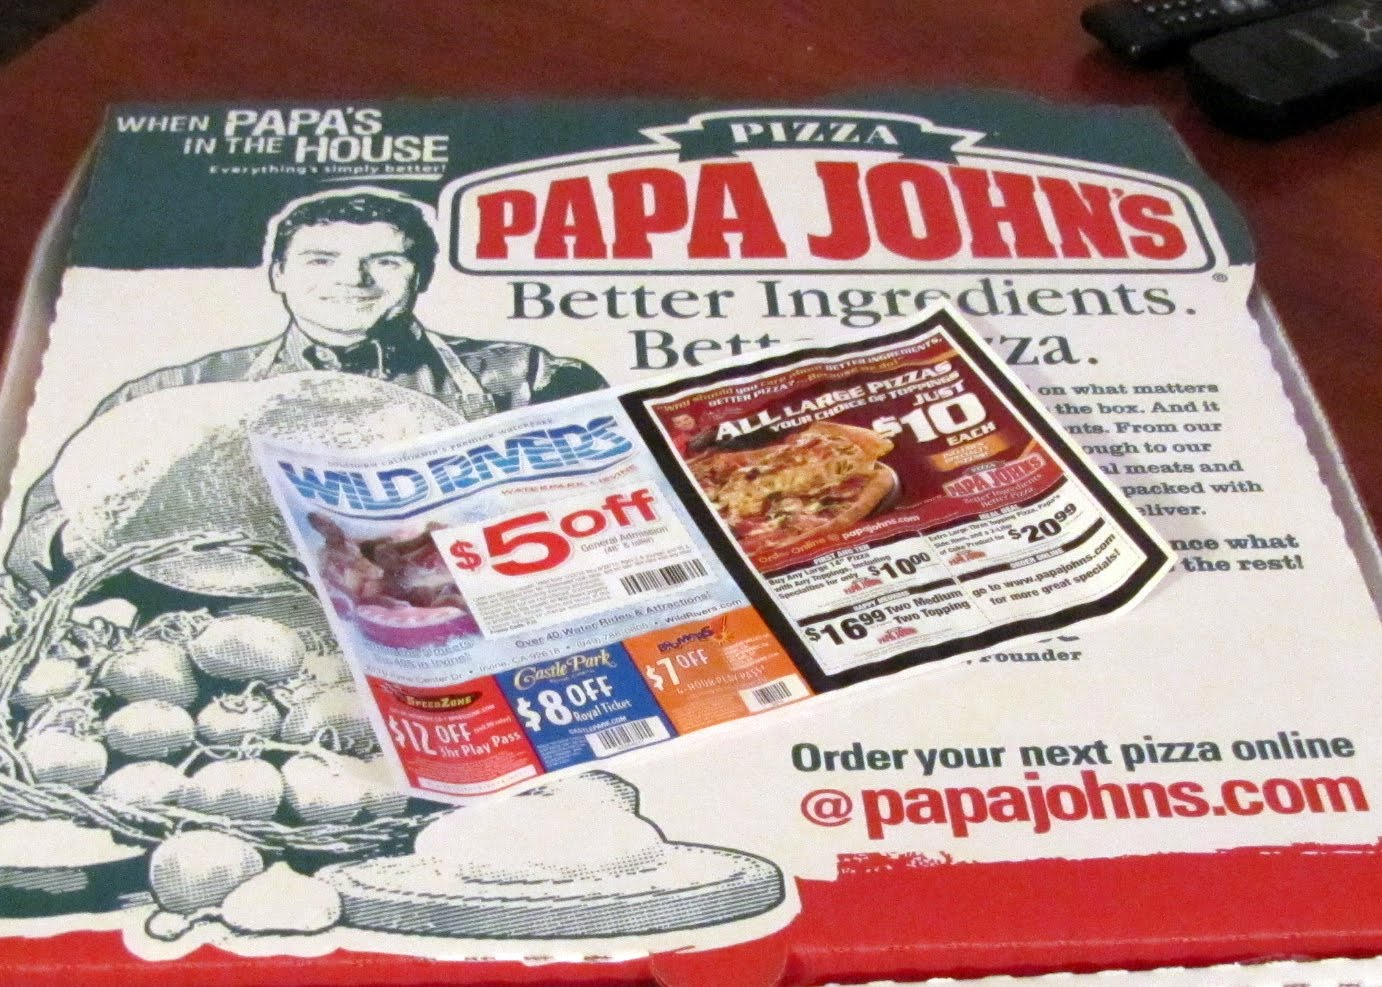 Smells Like Food in Here: Papa John's The Works Pizza Papa Johns Pizza Box Opened